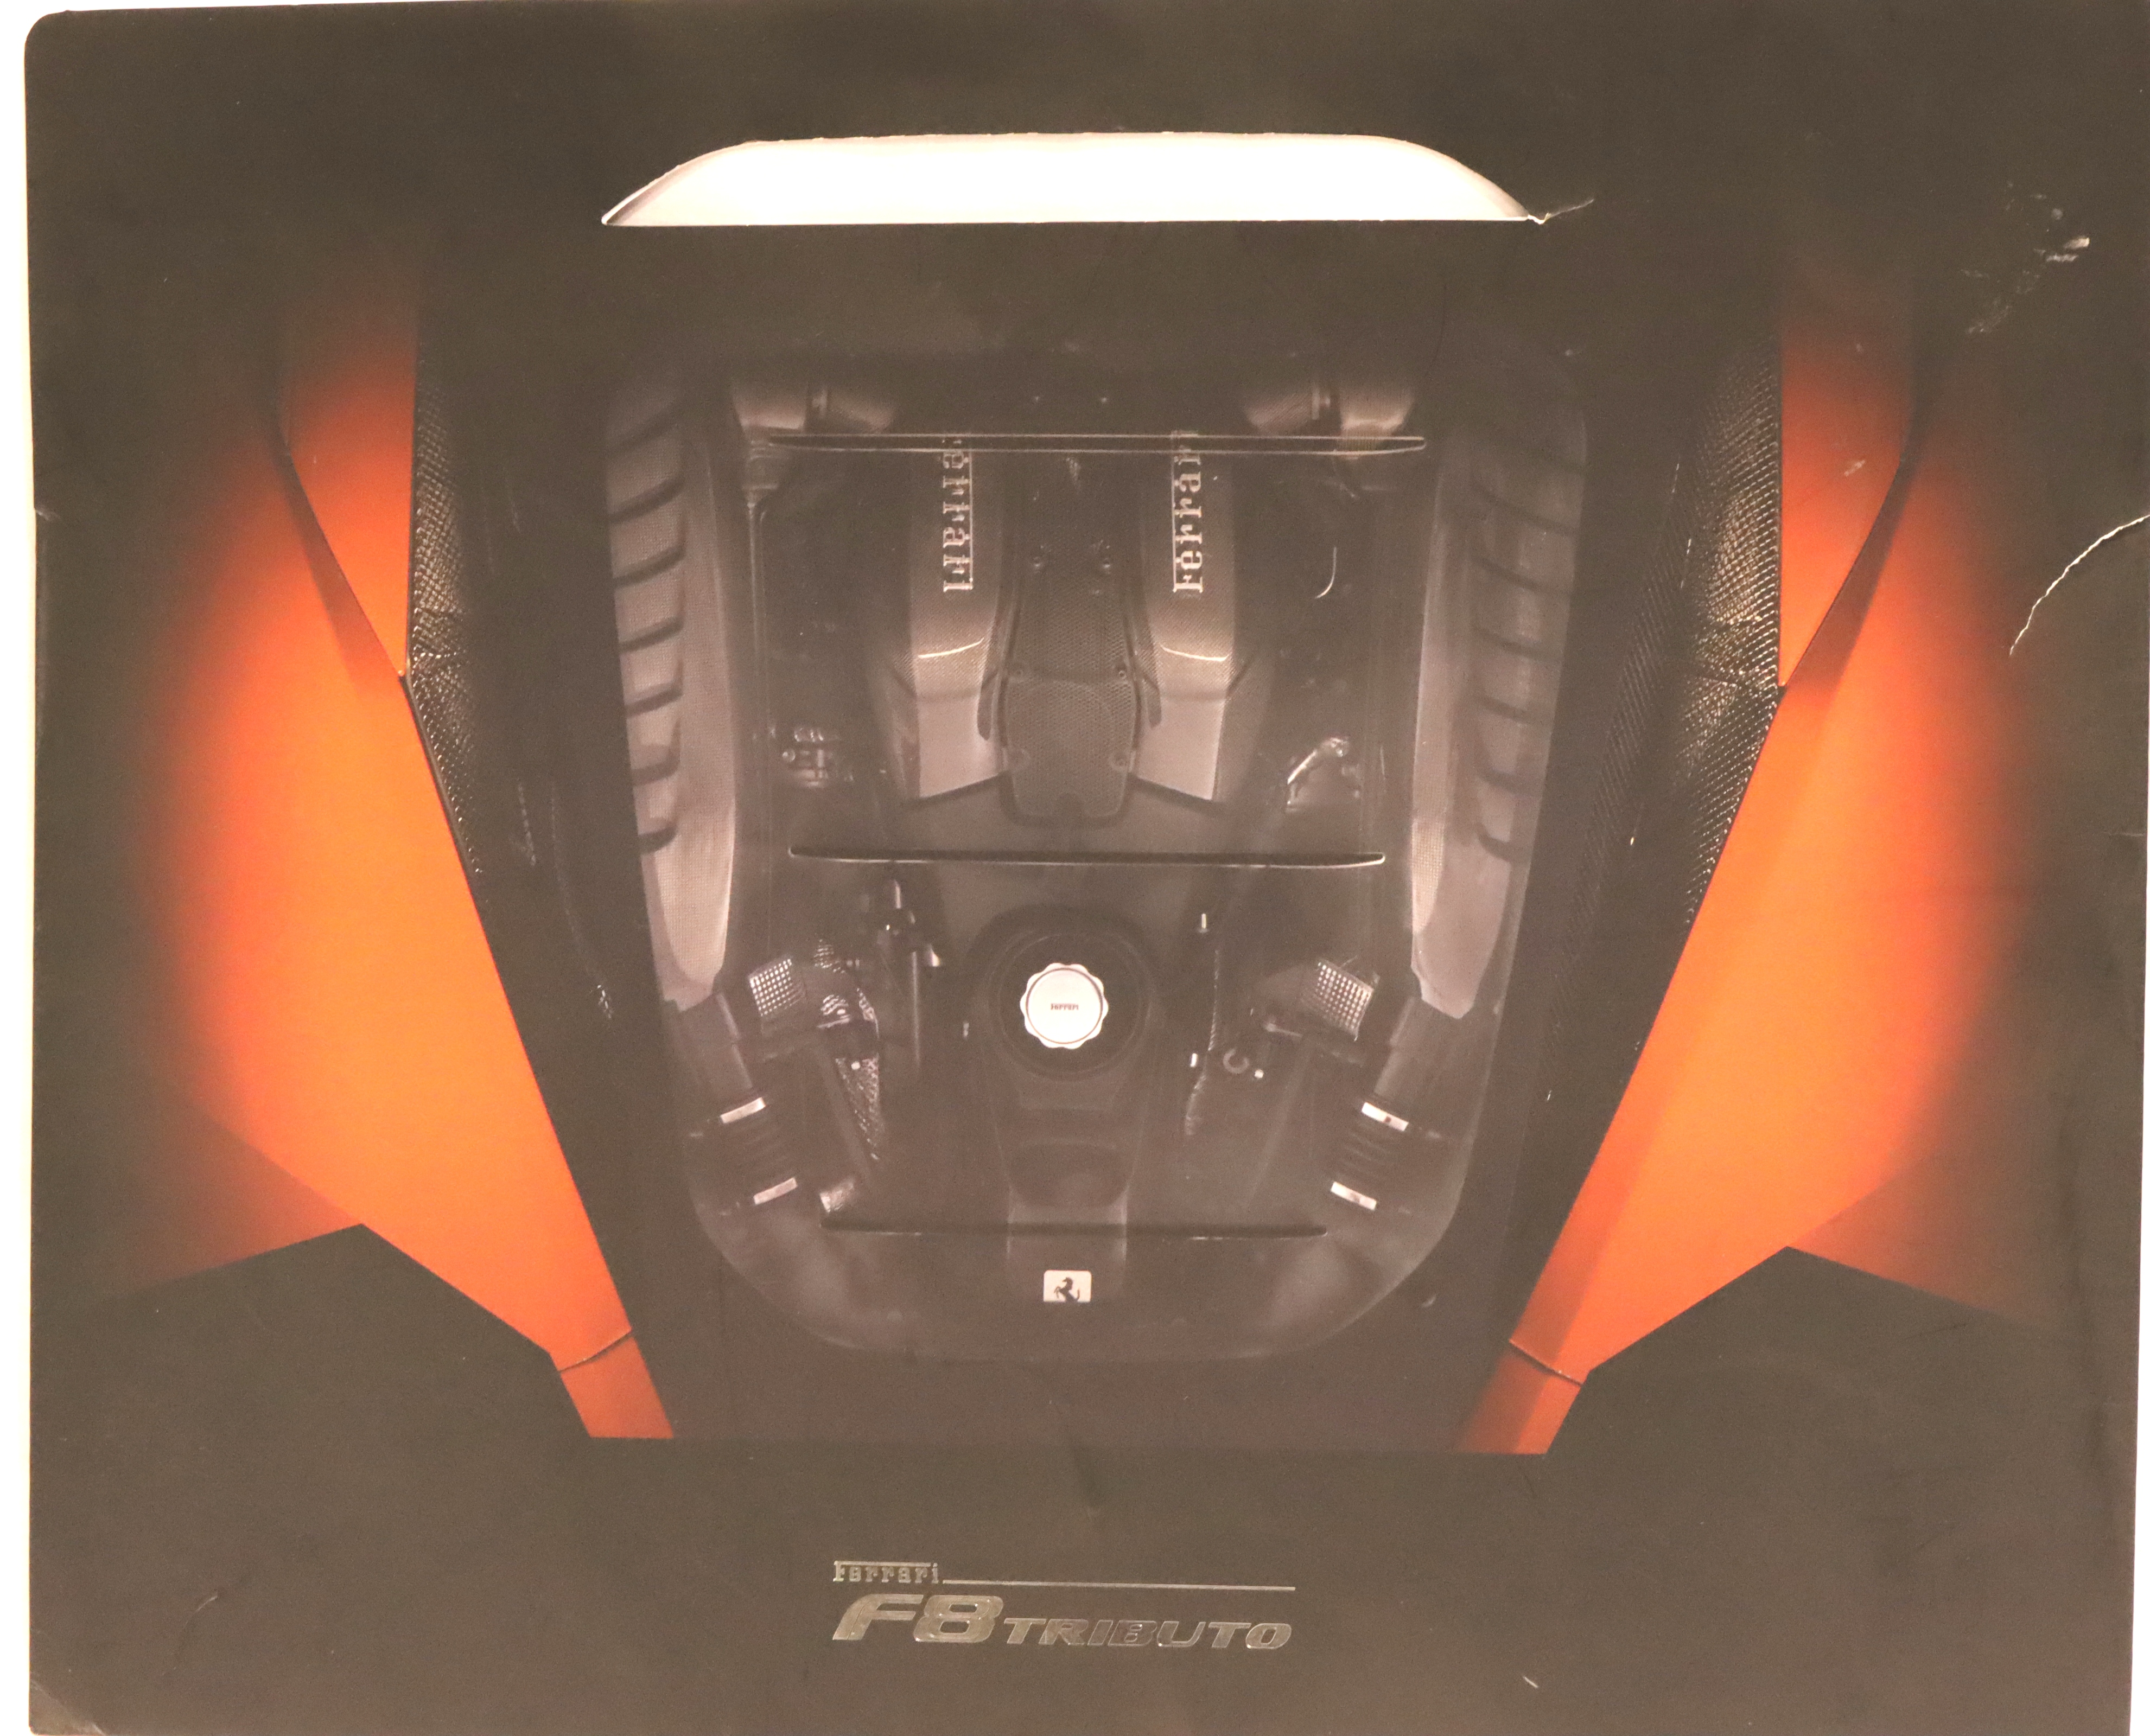 Ferrari F8 Tribute poster inside a sleeve cover. P&P Group 2 (£18+VAT for the first lot and £3+VAT